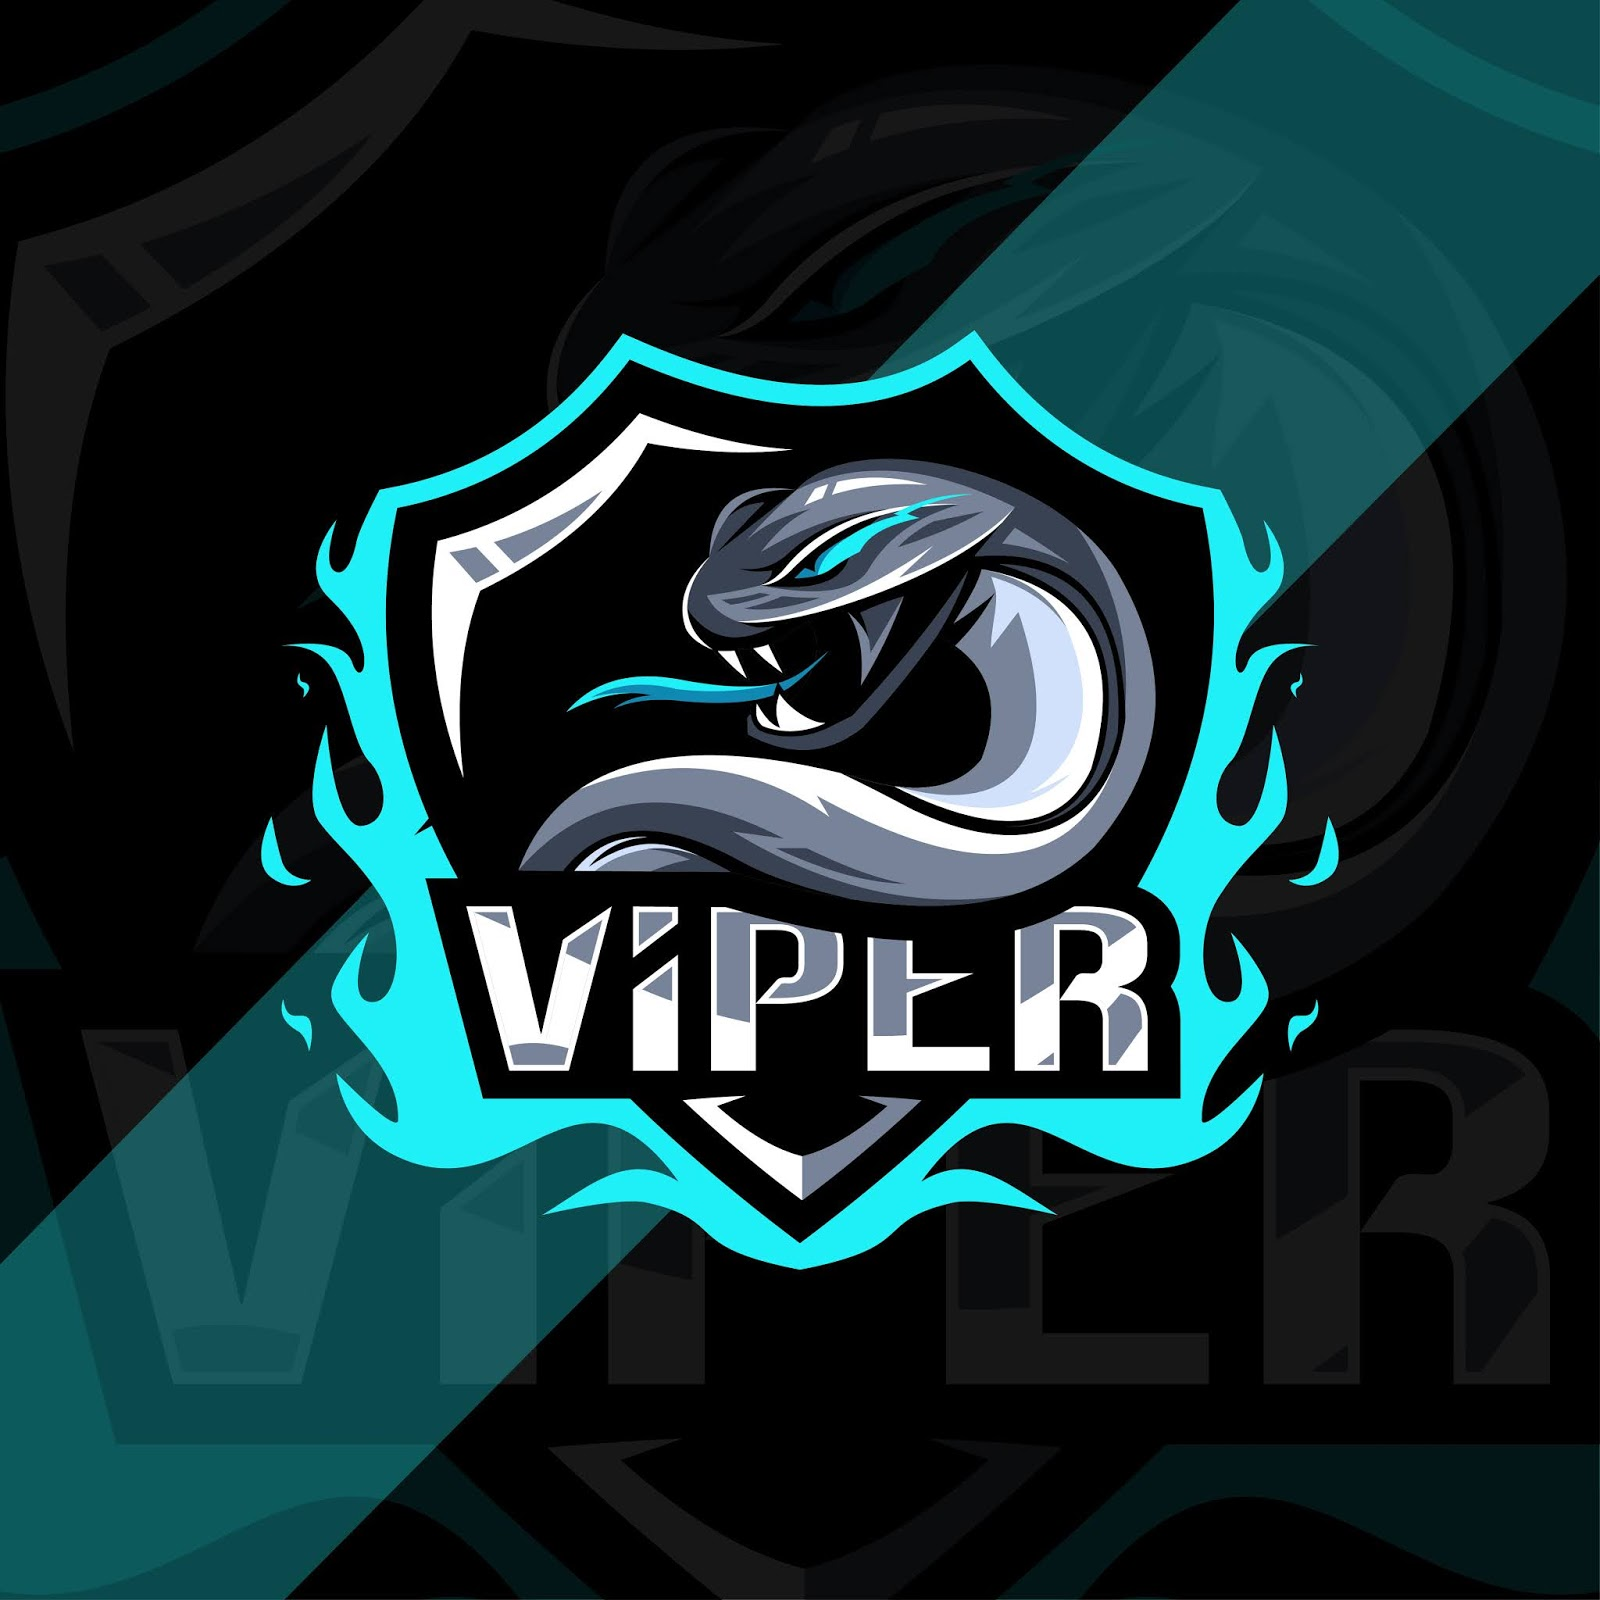 Viper Mascot Logo Esport Design Free Download Vector CDR, AI, EPS and PNG Formats